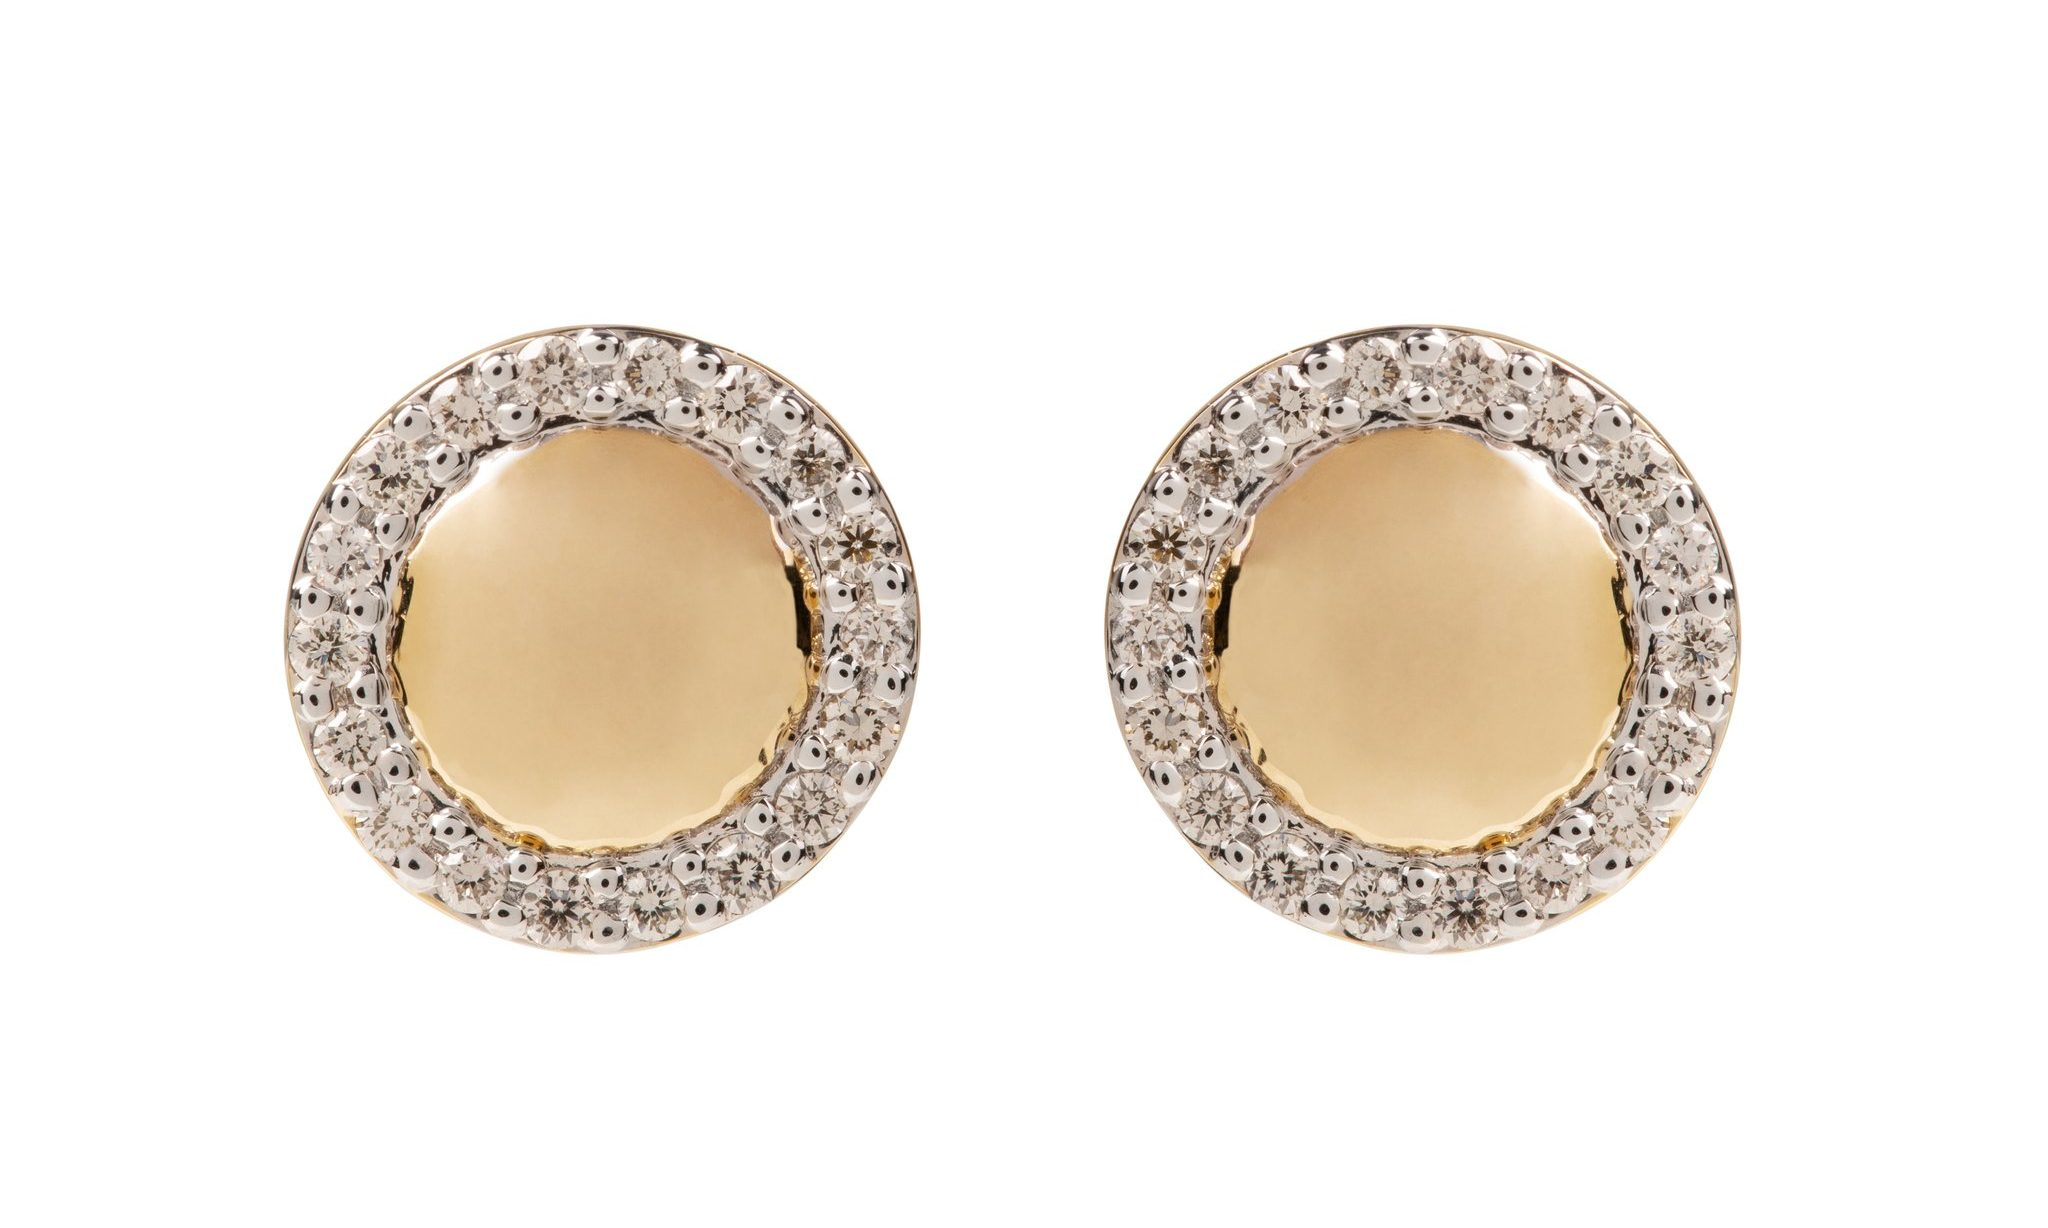 Emily Mortimer Jewellery launches Hera Collection - Jewellery Focus